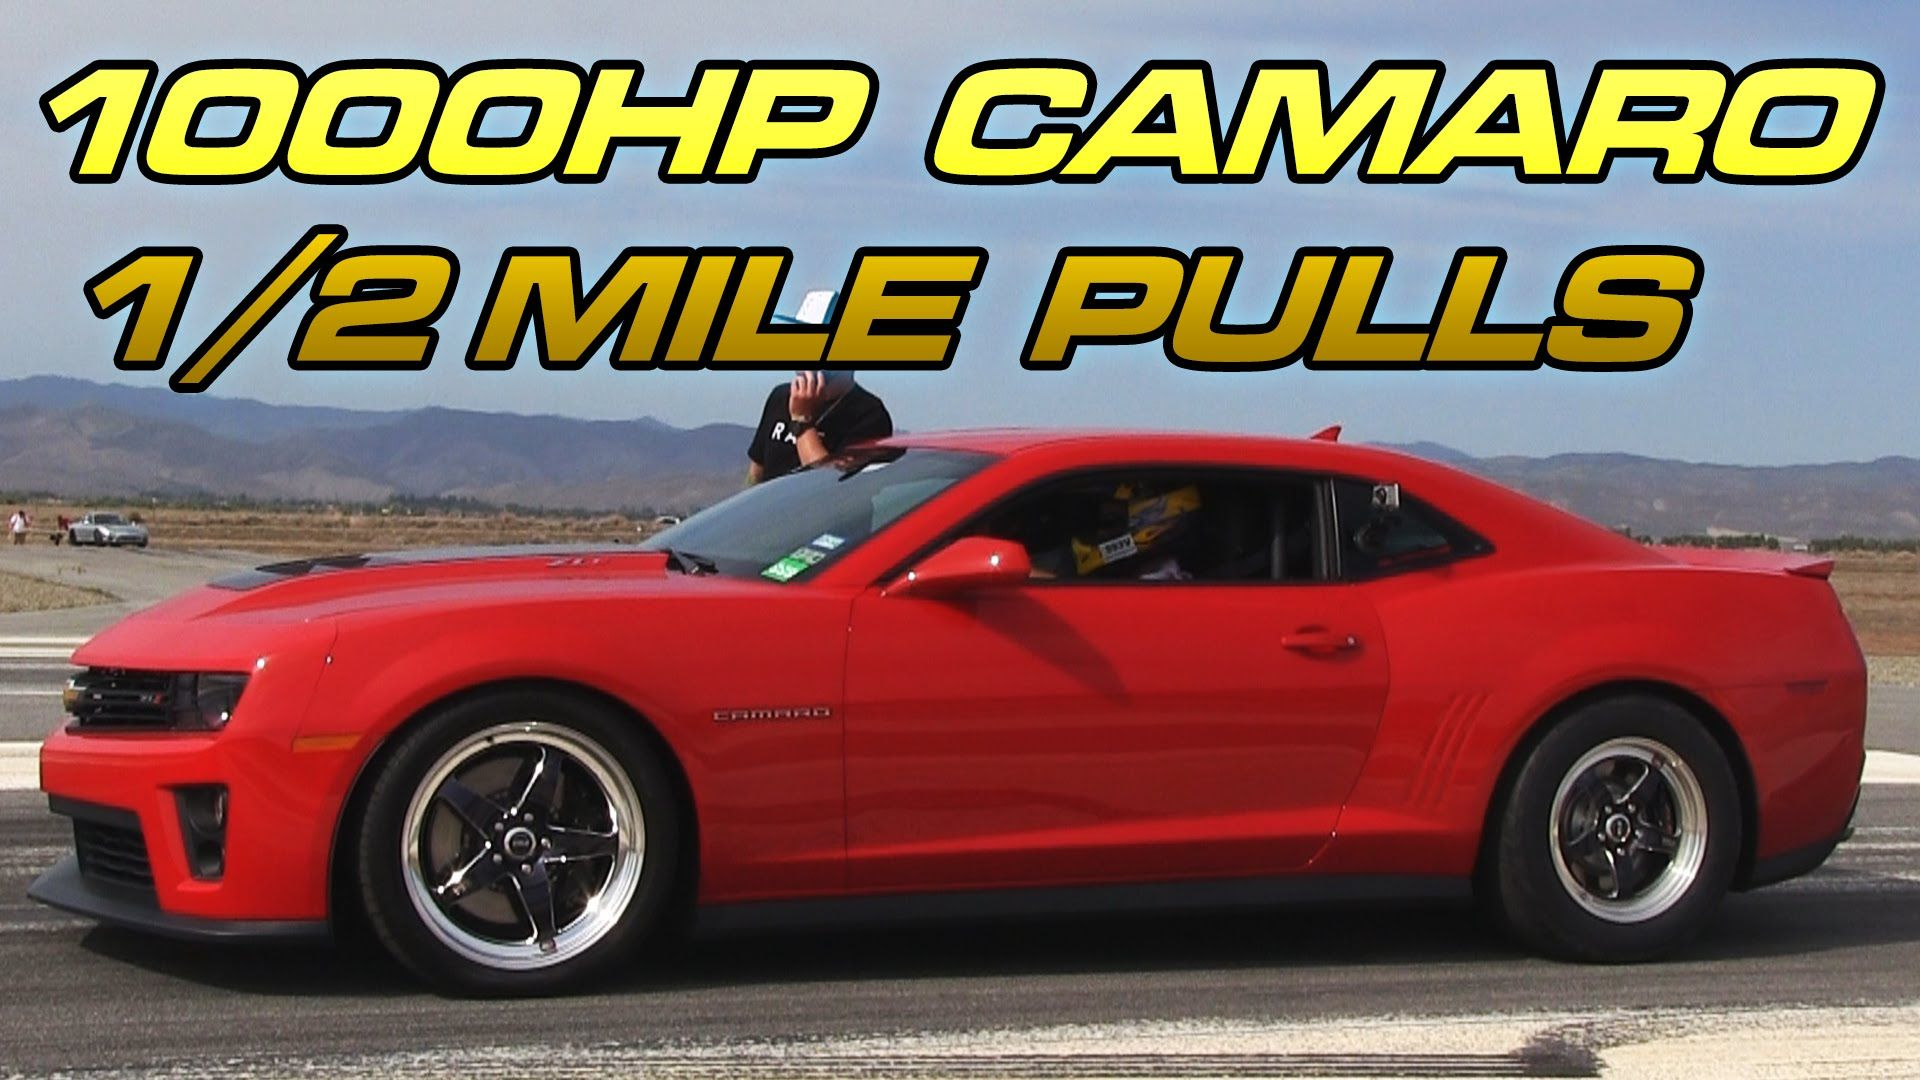 1000hp Twin Turbo Camaro Zl1 1 2 Mile Passes Cars